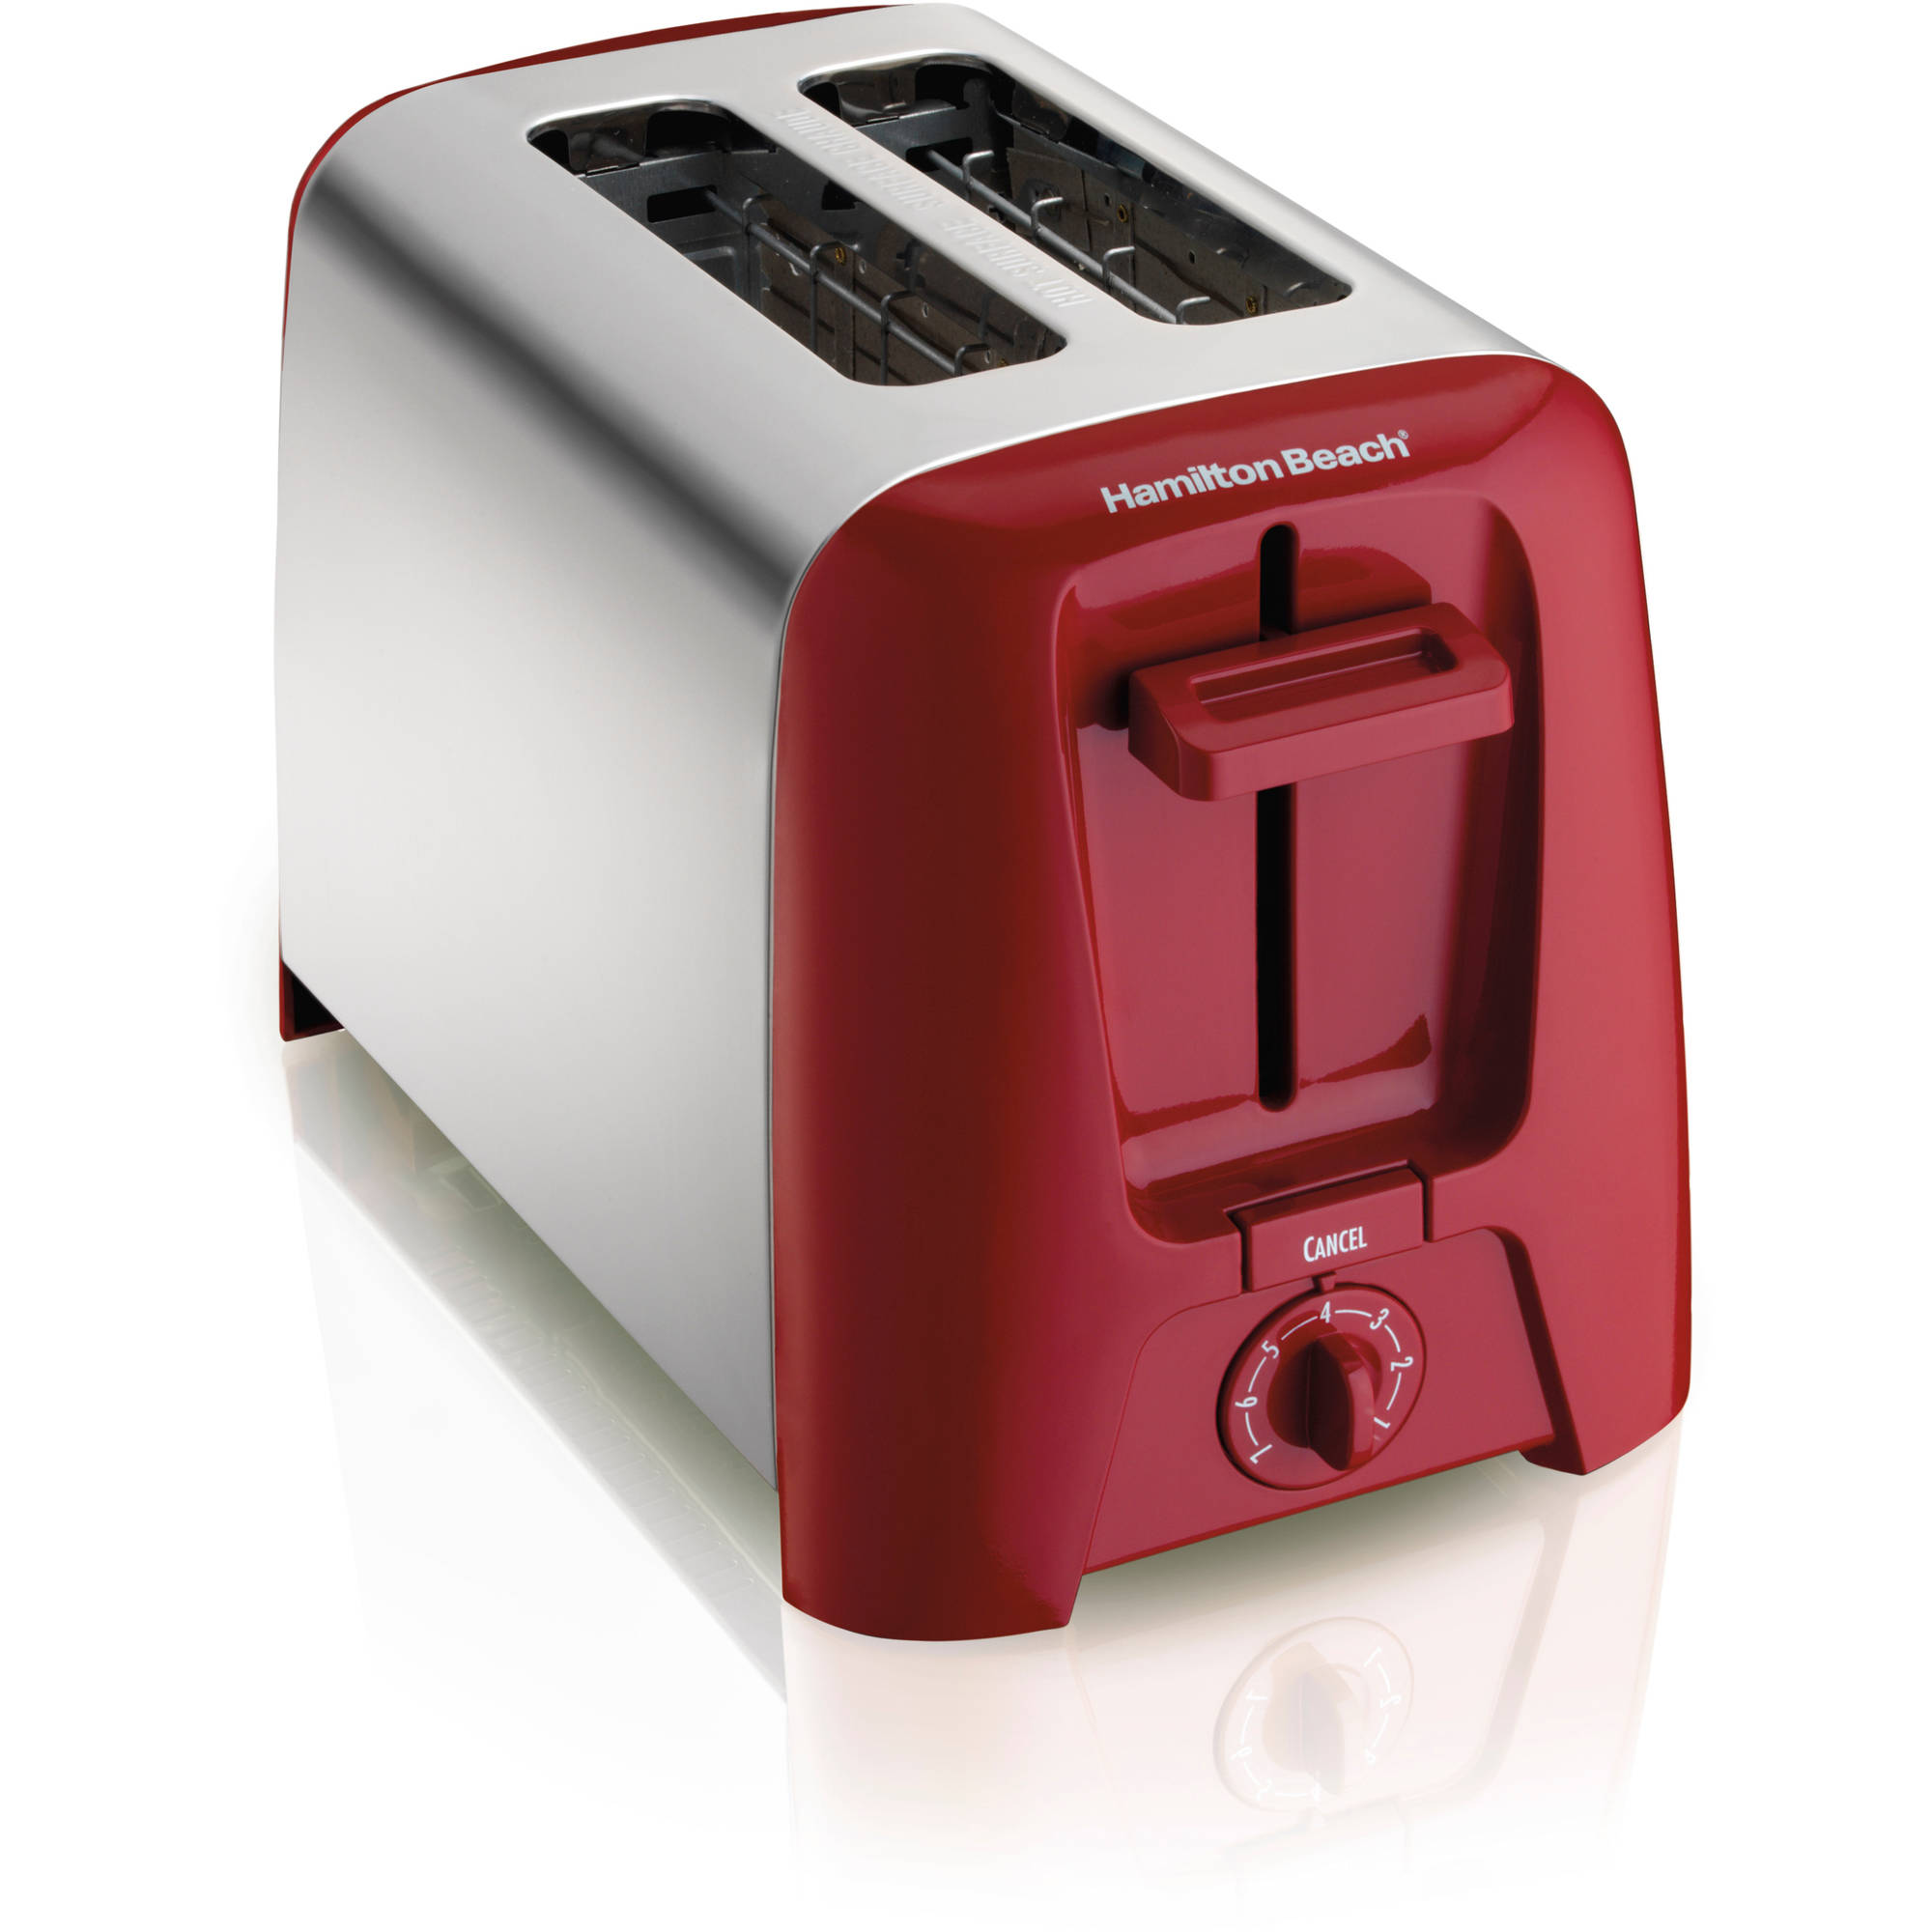 Hamilton Beach Cool Wall 2-Slice Toaster